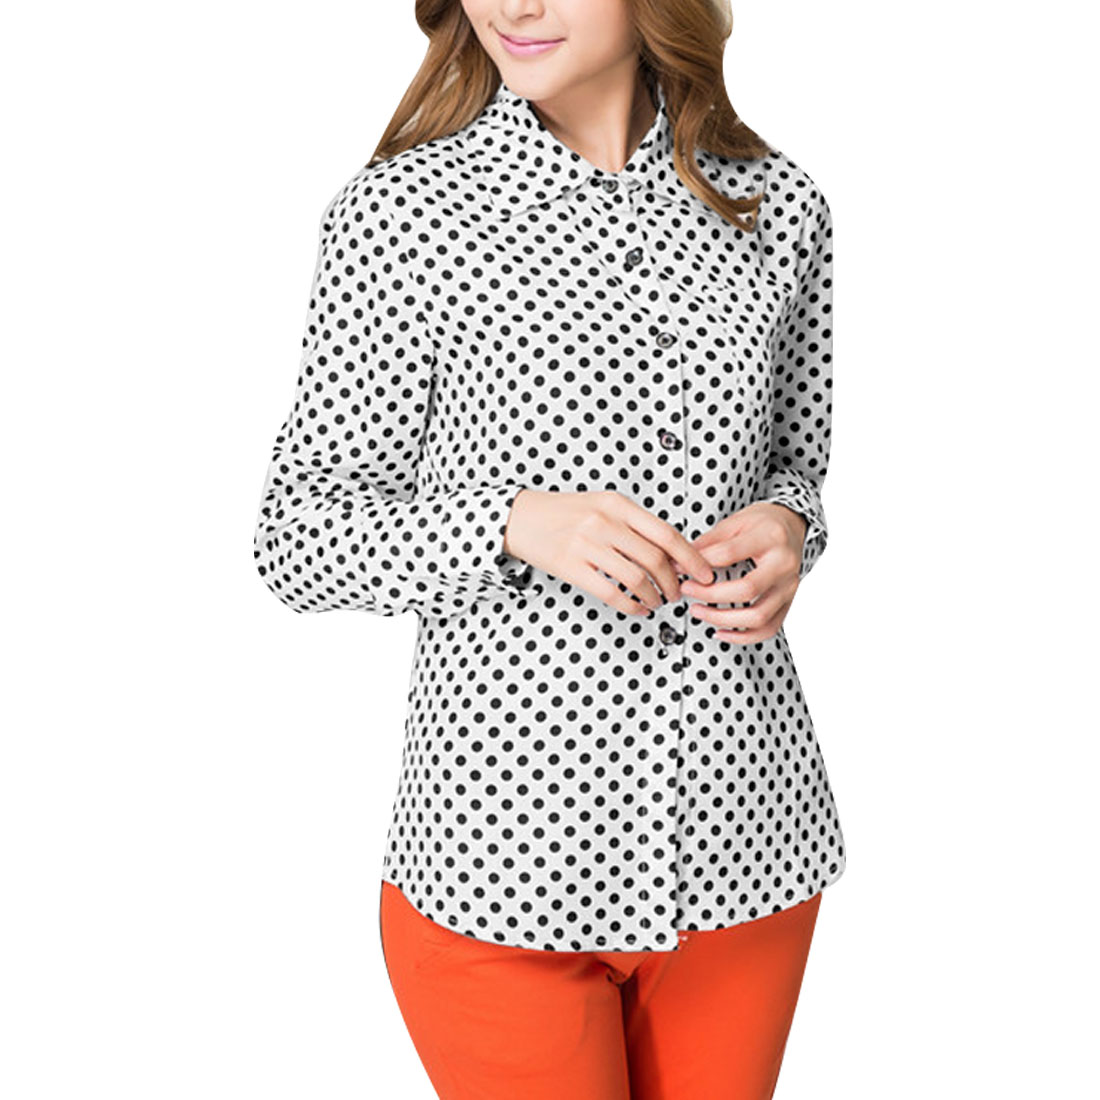 Stylish Ladies Single-Breasted Front Polka Dots Prints White Blouse XS